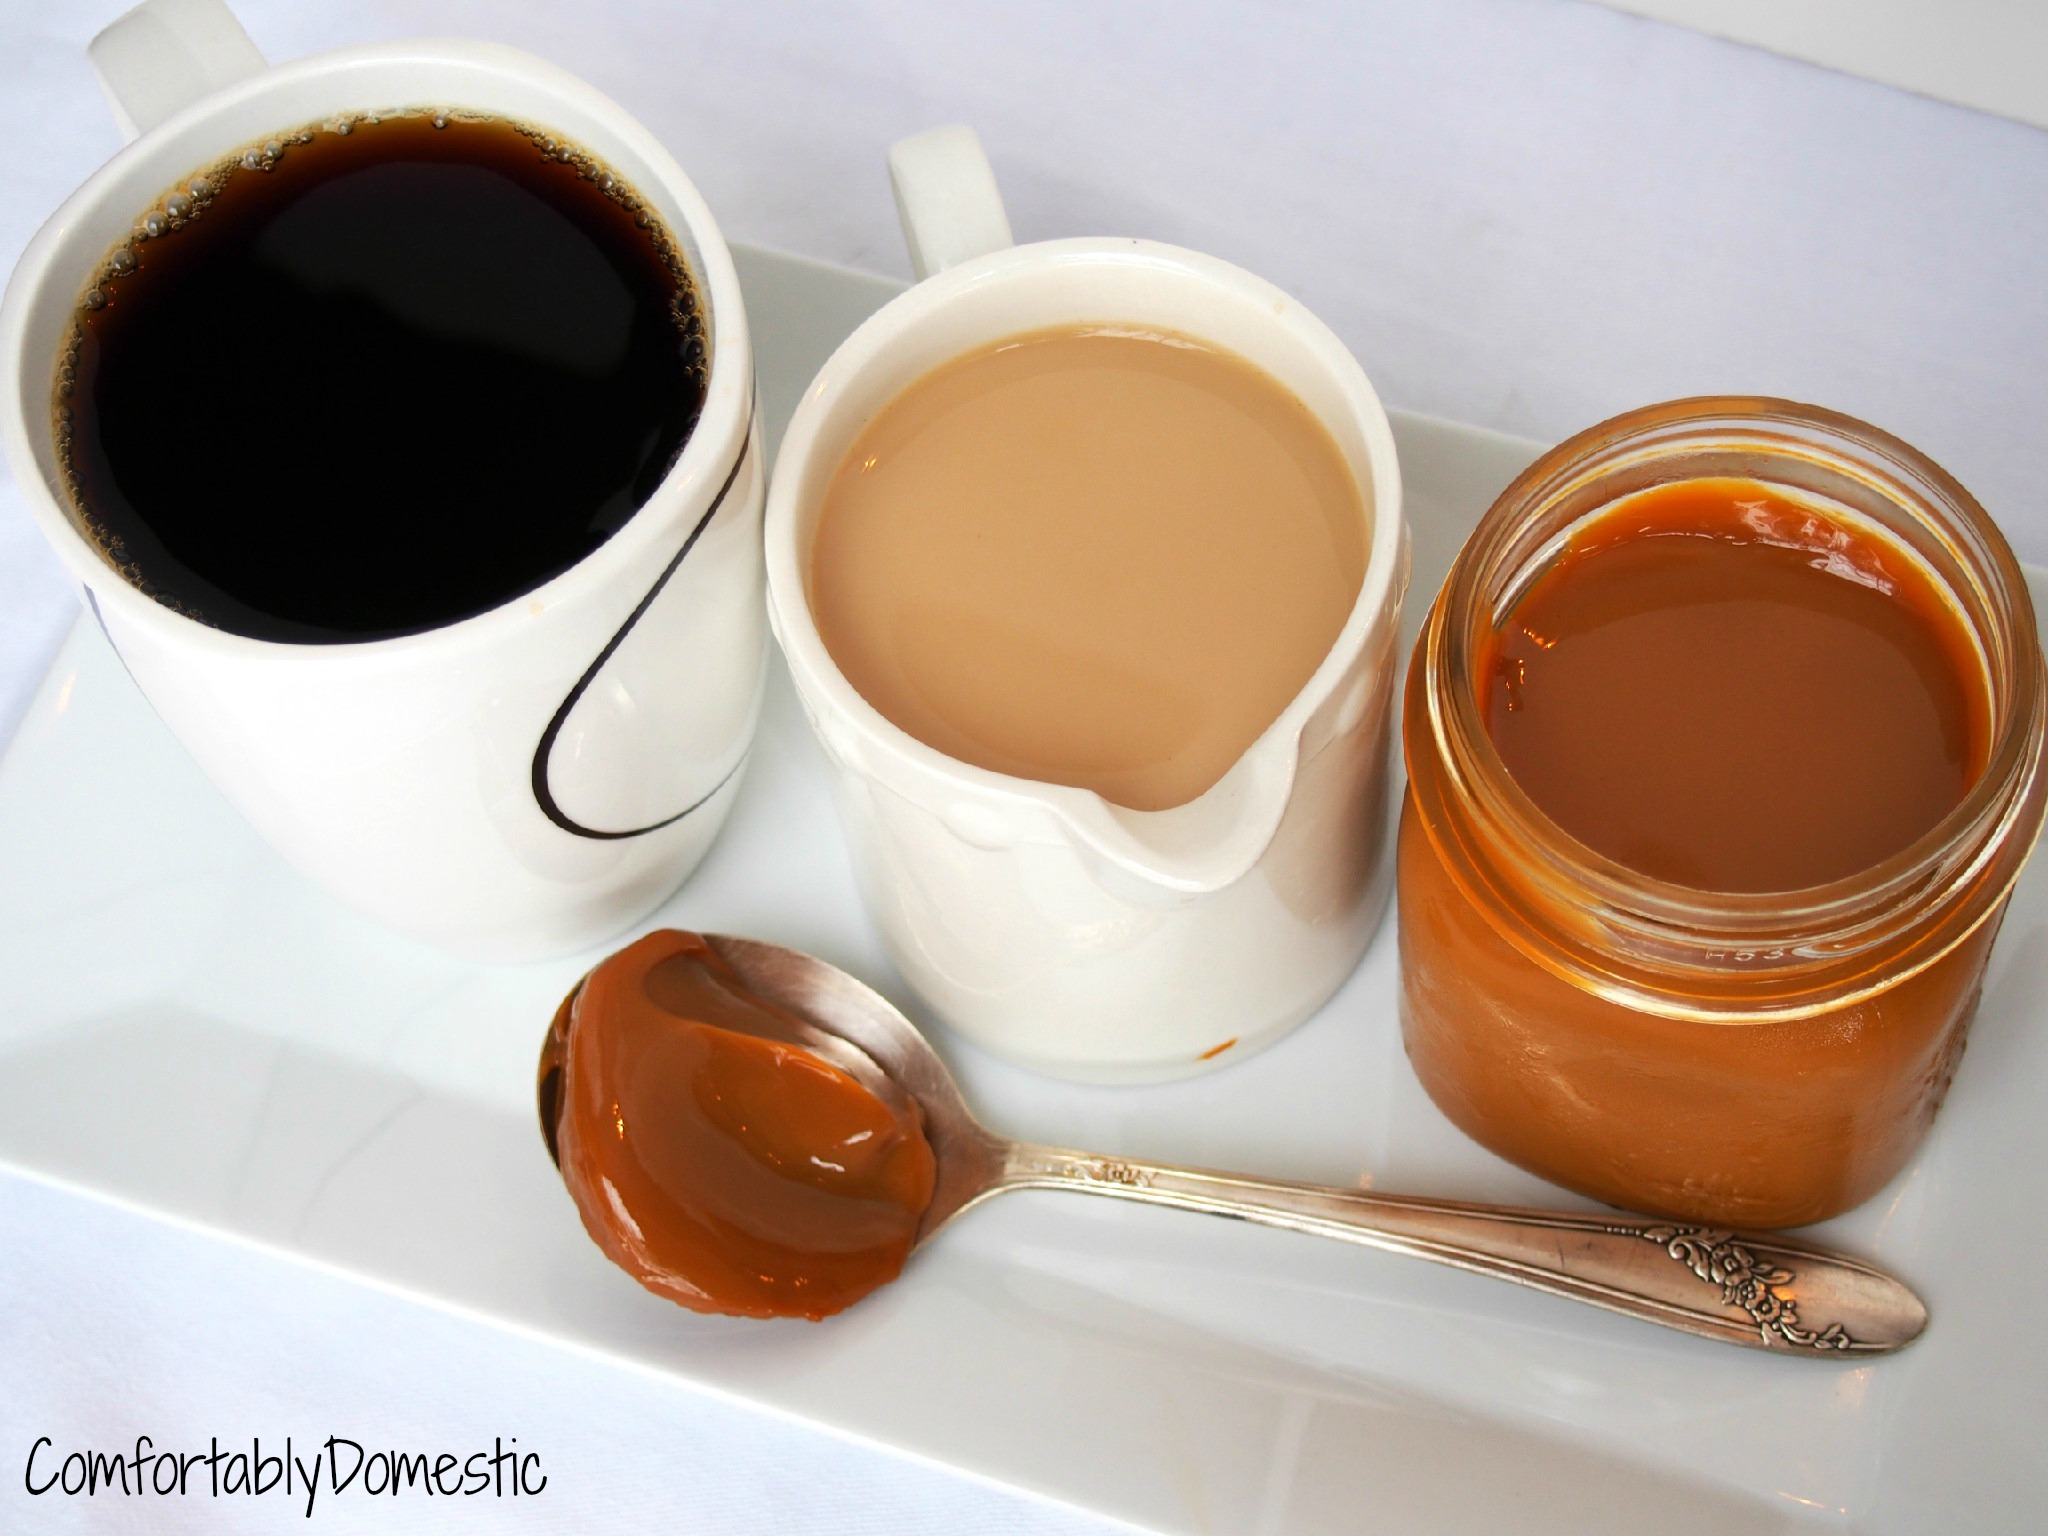 ... Do-it-Yourself Dulce de Leche Coffee Creamer | Comfortably Domestic